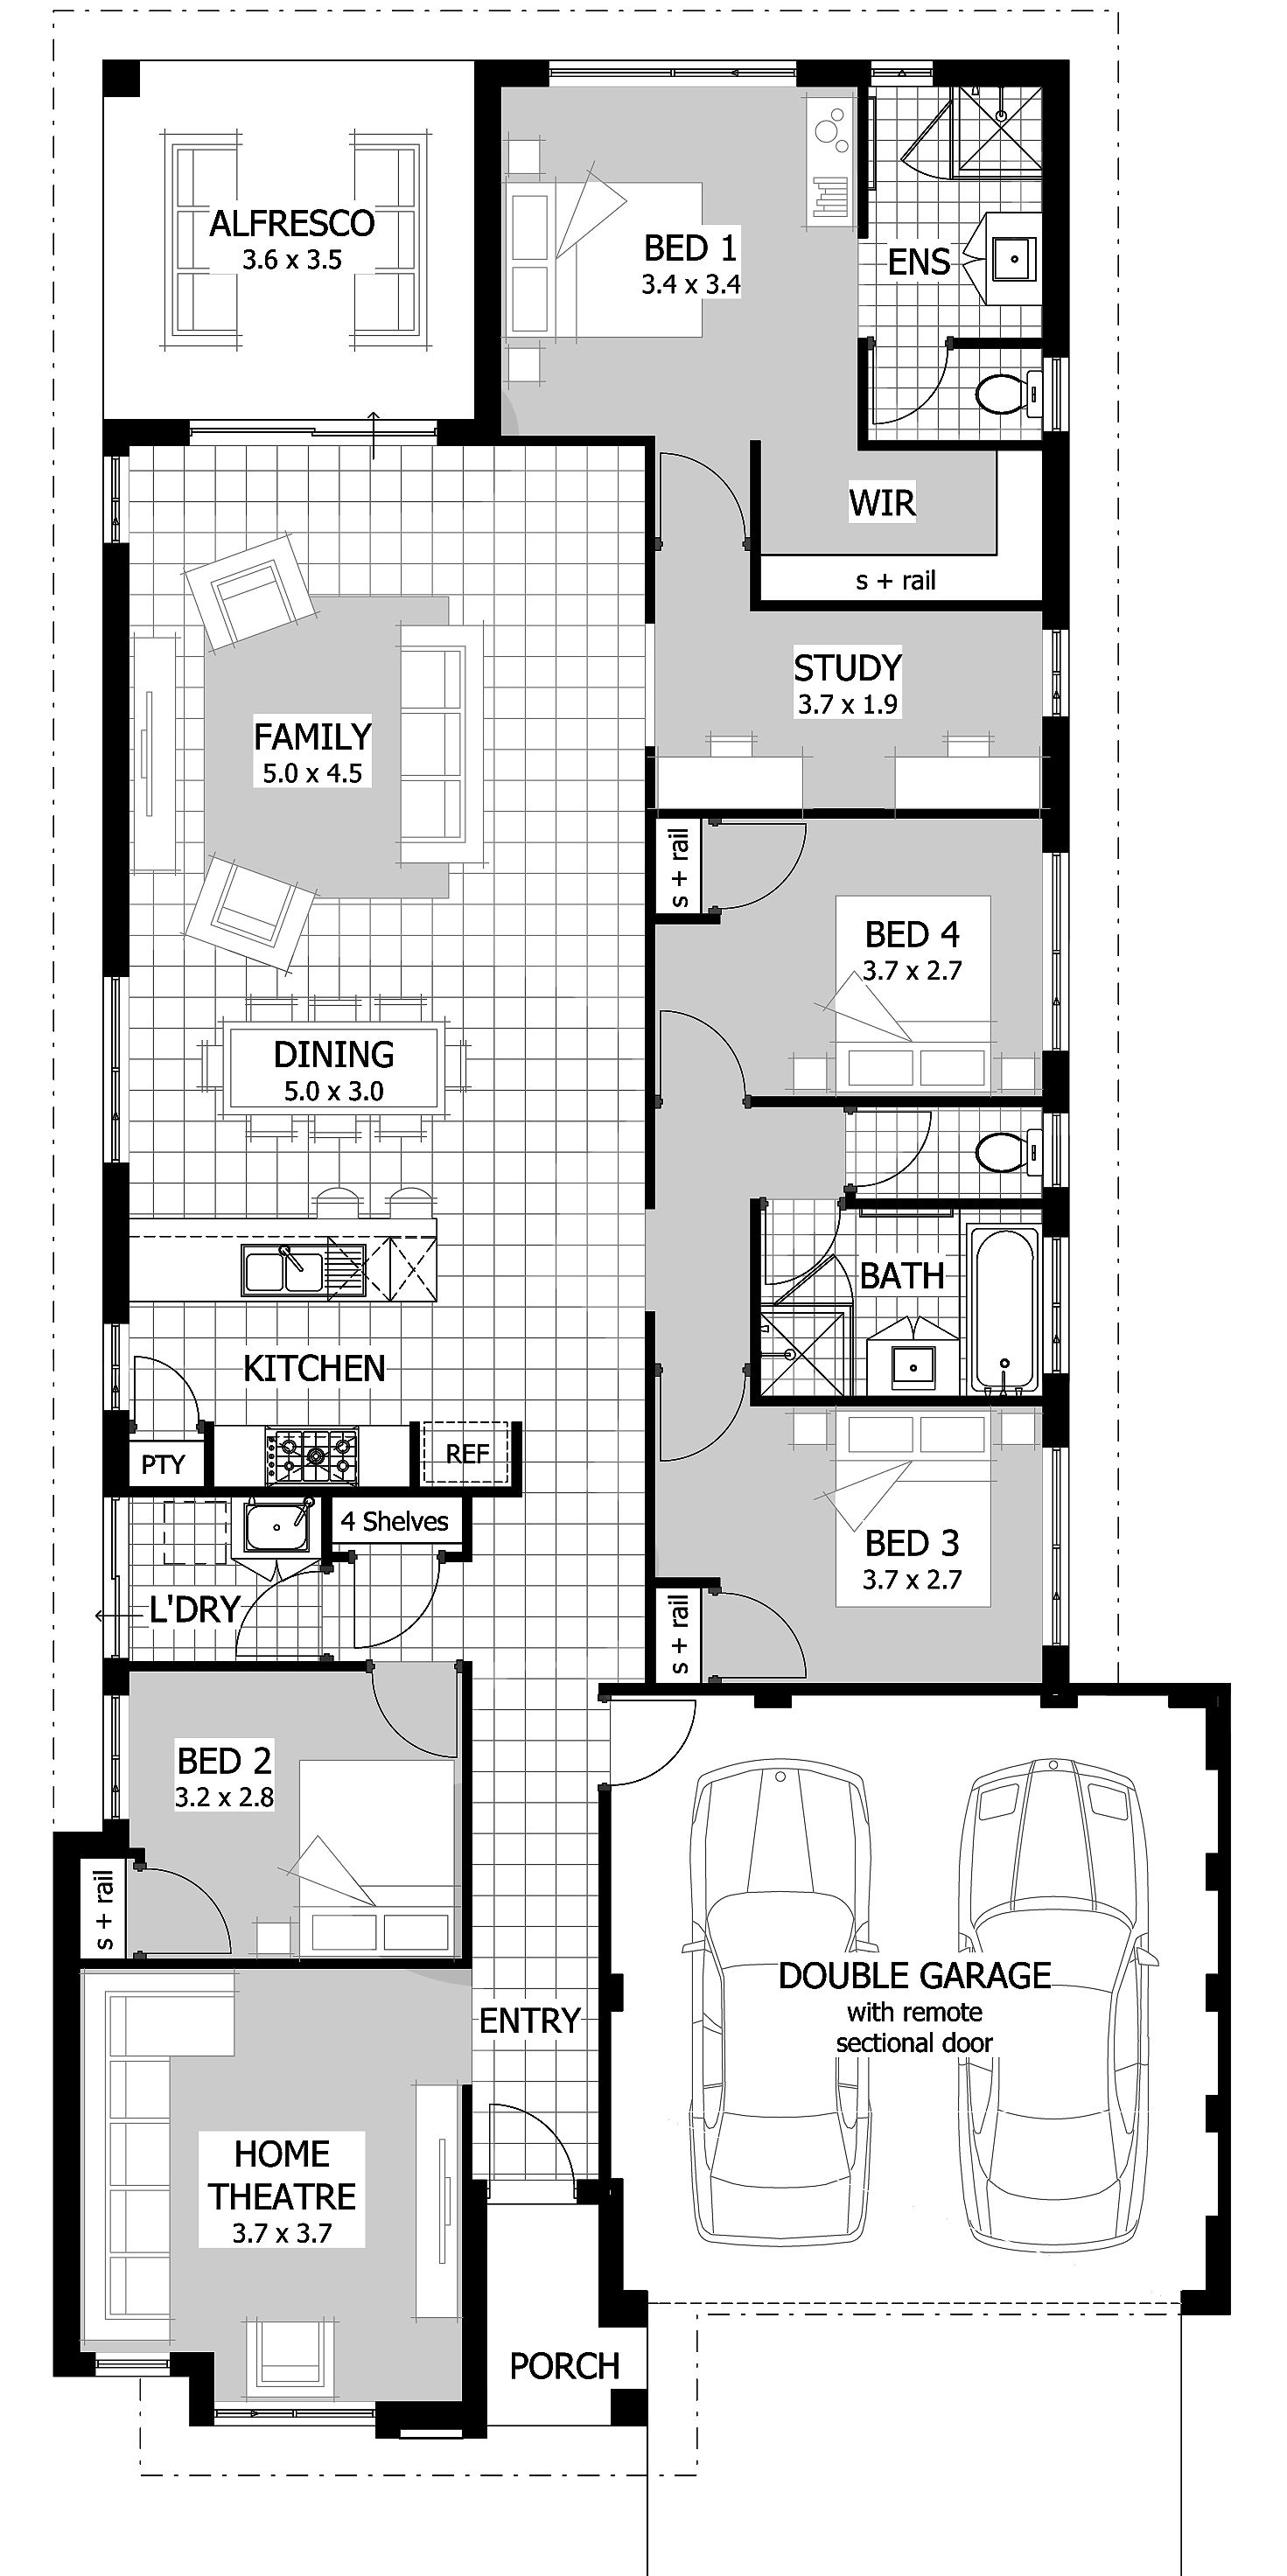 Home And Land Packages Narrow House Plans New House Plans House Plans